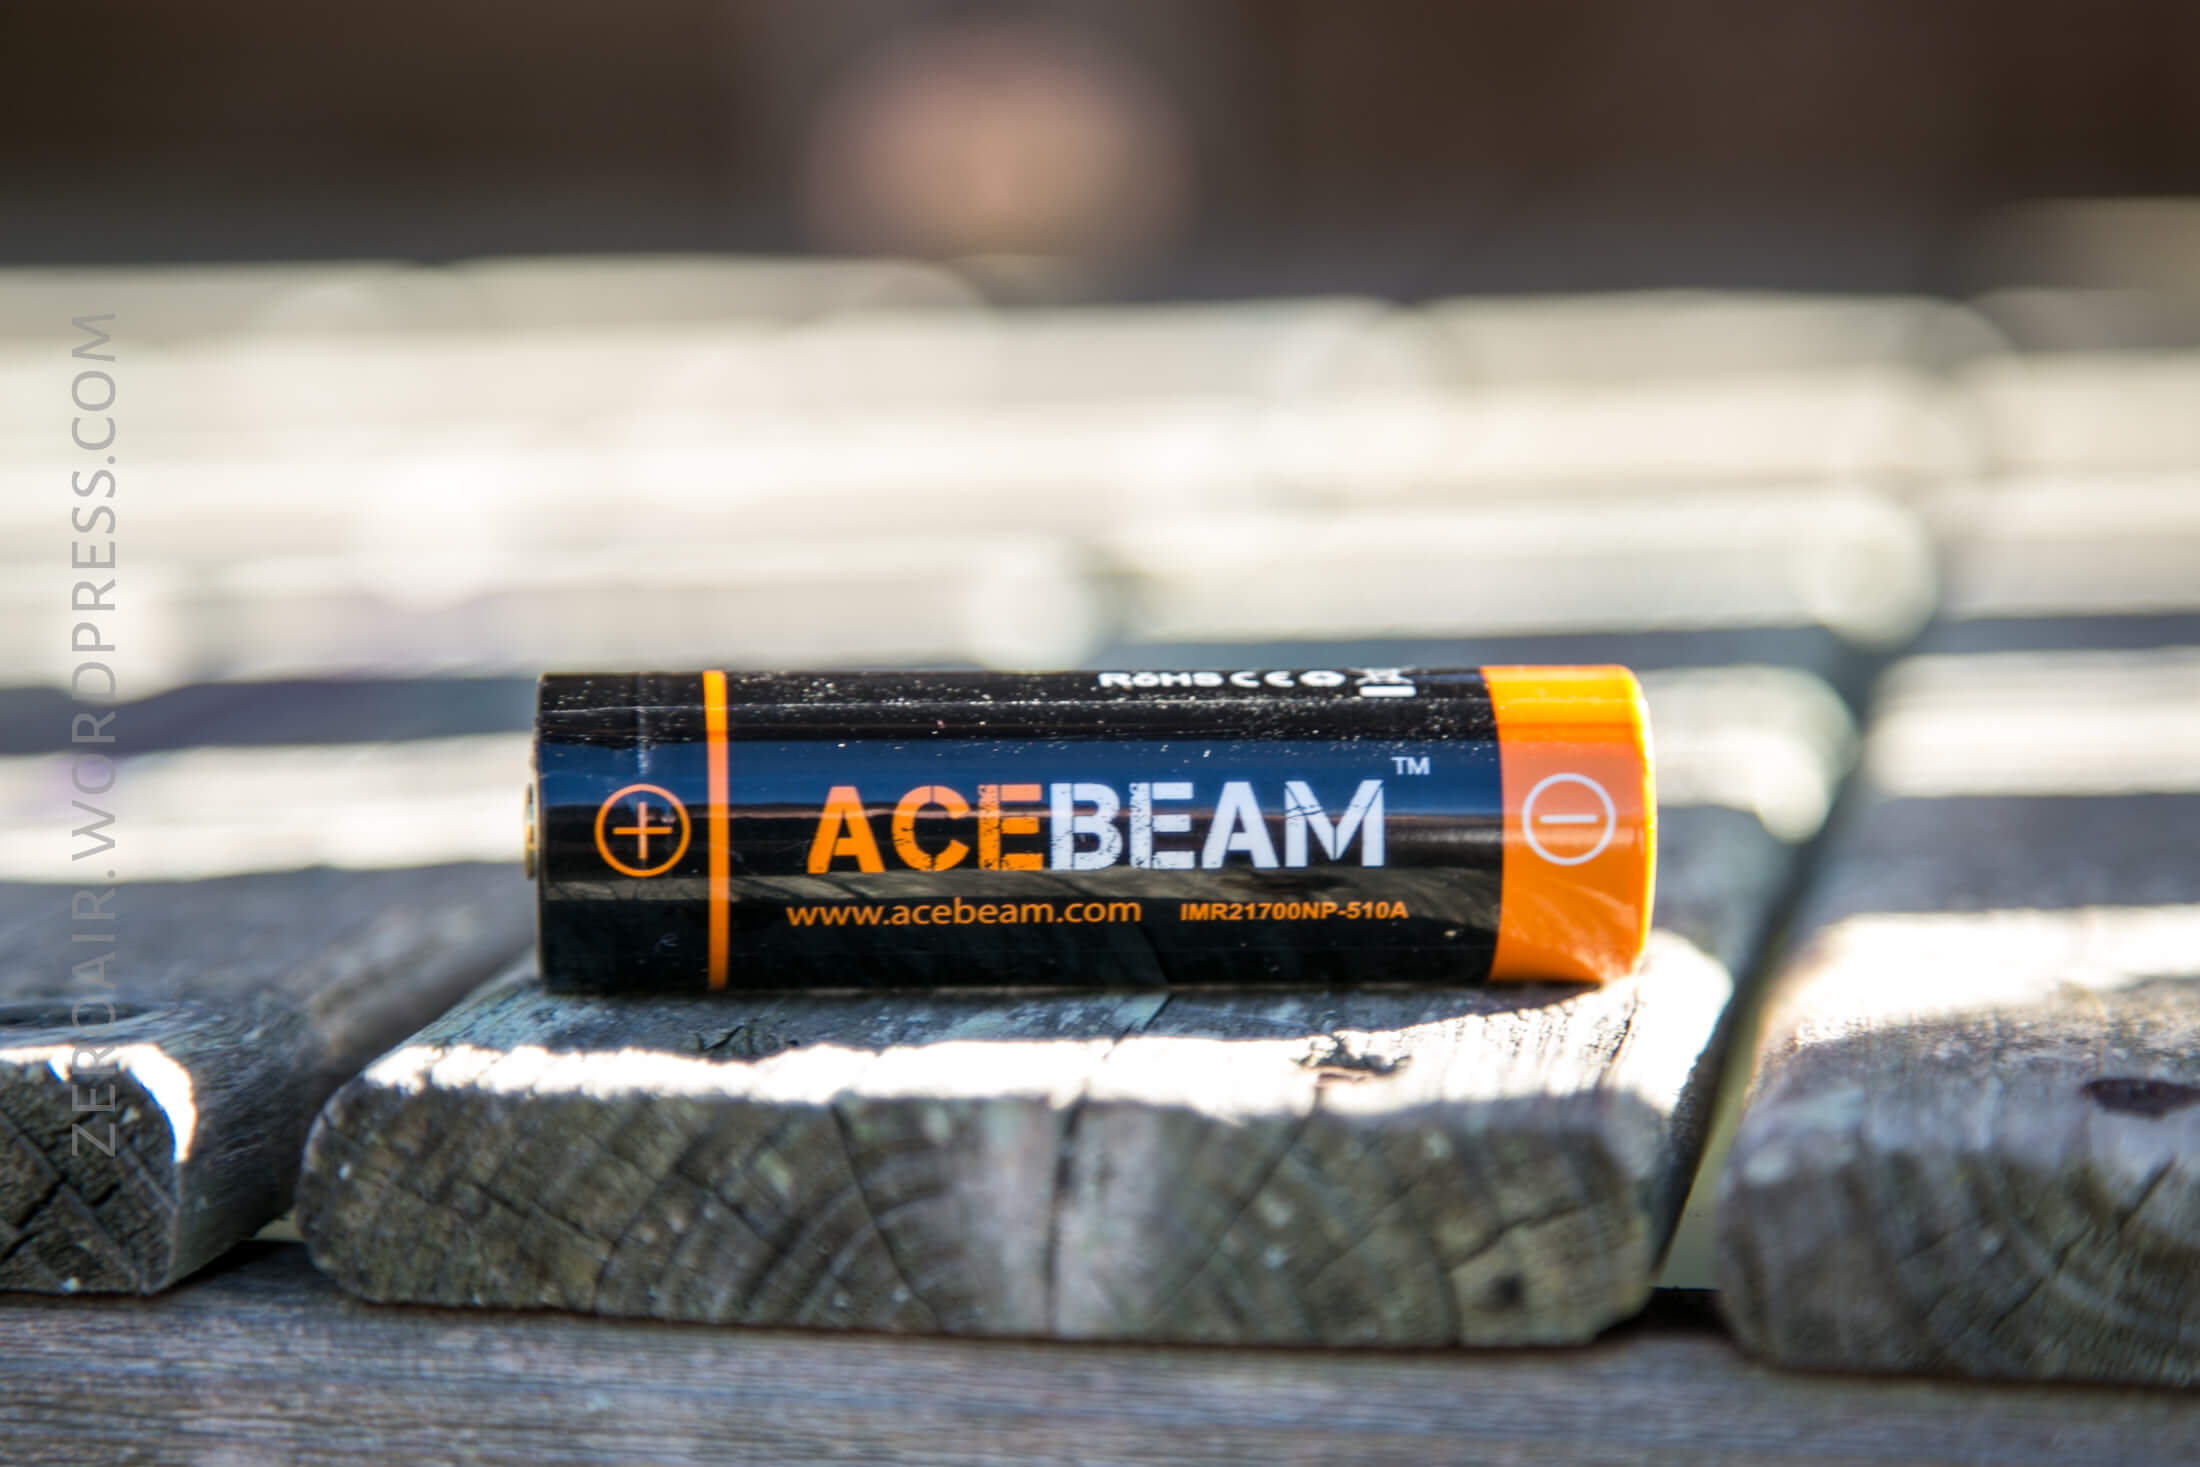 zeroair_reviews_acebeam_ec65_21700_nichia_37.jpg